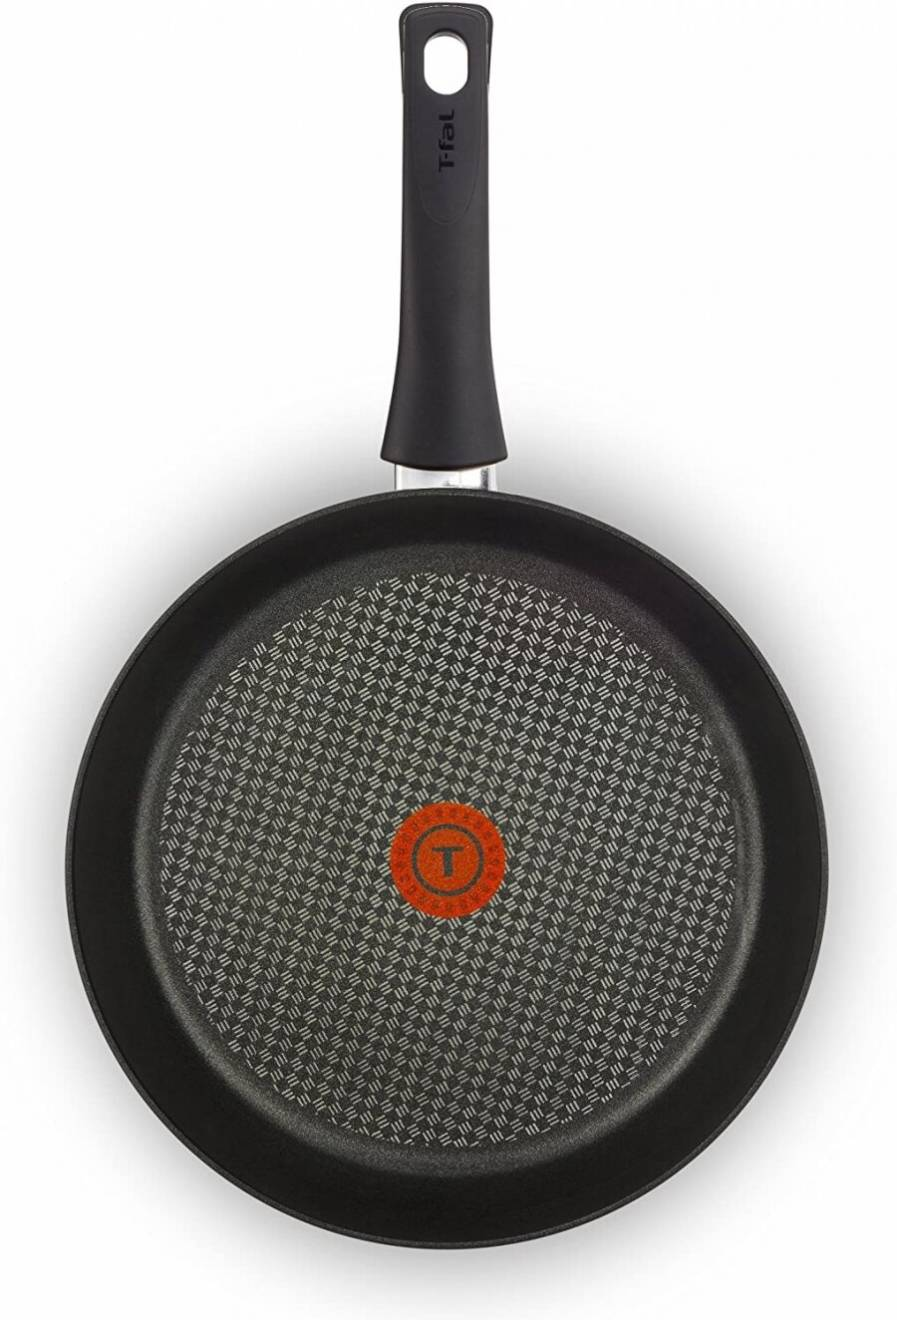 CHEF DELIGHT 26CM FRYPAN WITH THERMOSPOT